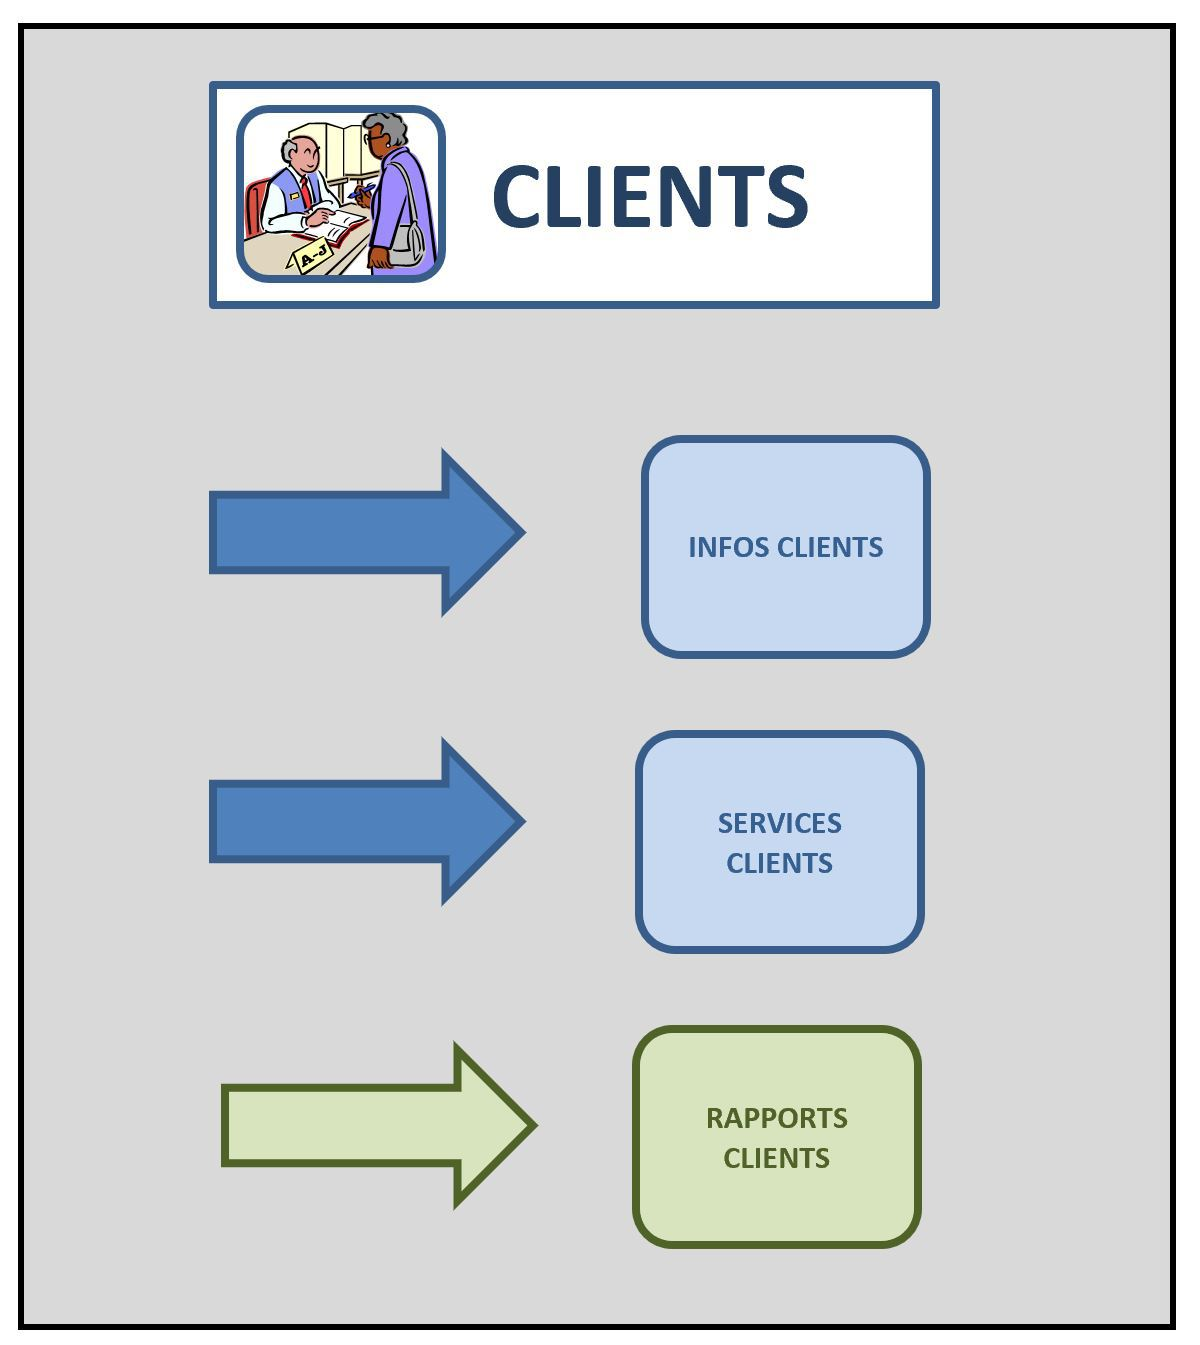 Section clients